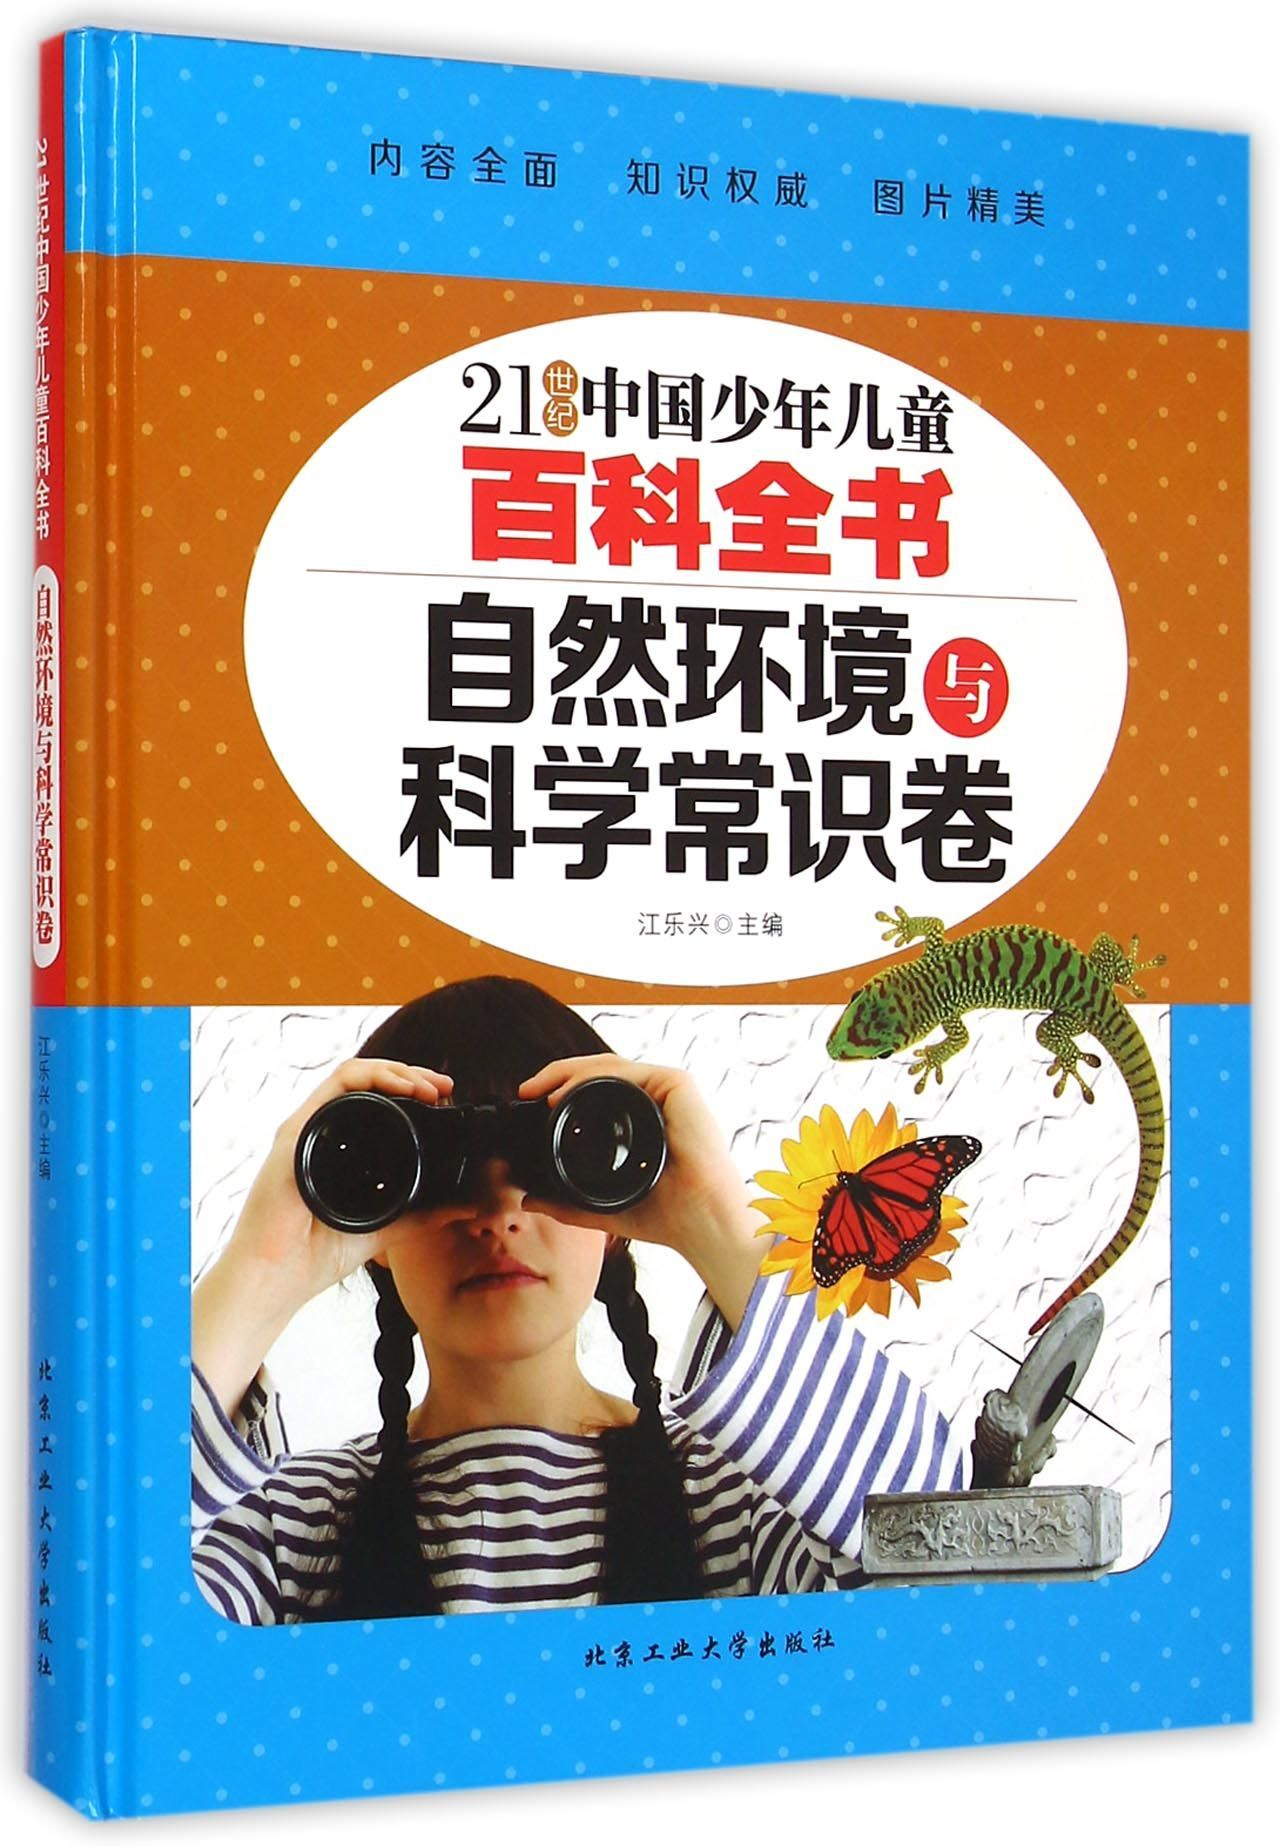 21st Century Chinese Children's Encyclopedia: Natural Environment & General Scientific Knowledge 21世纪中国少年儿童百科全书